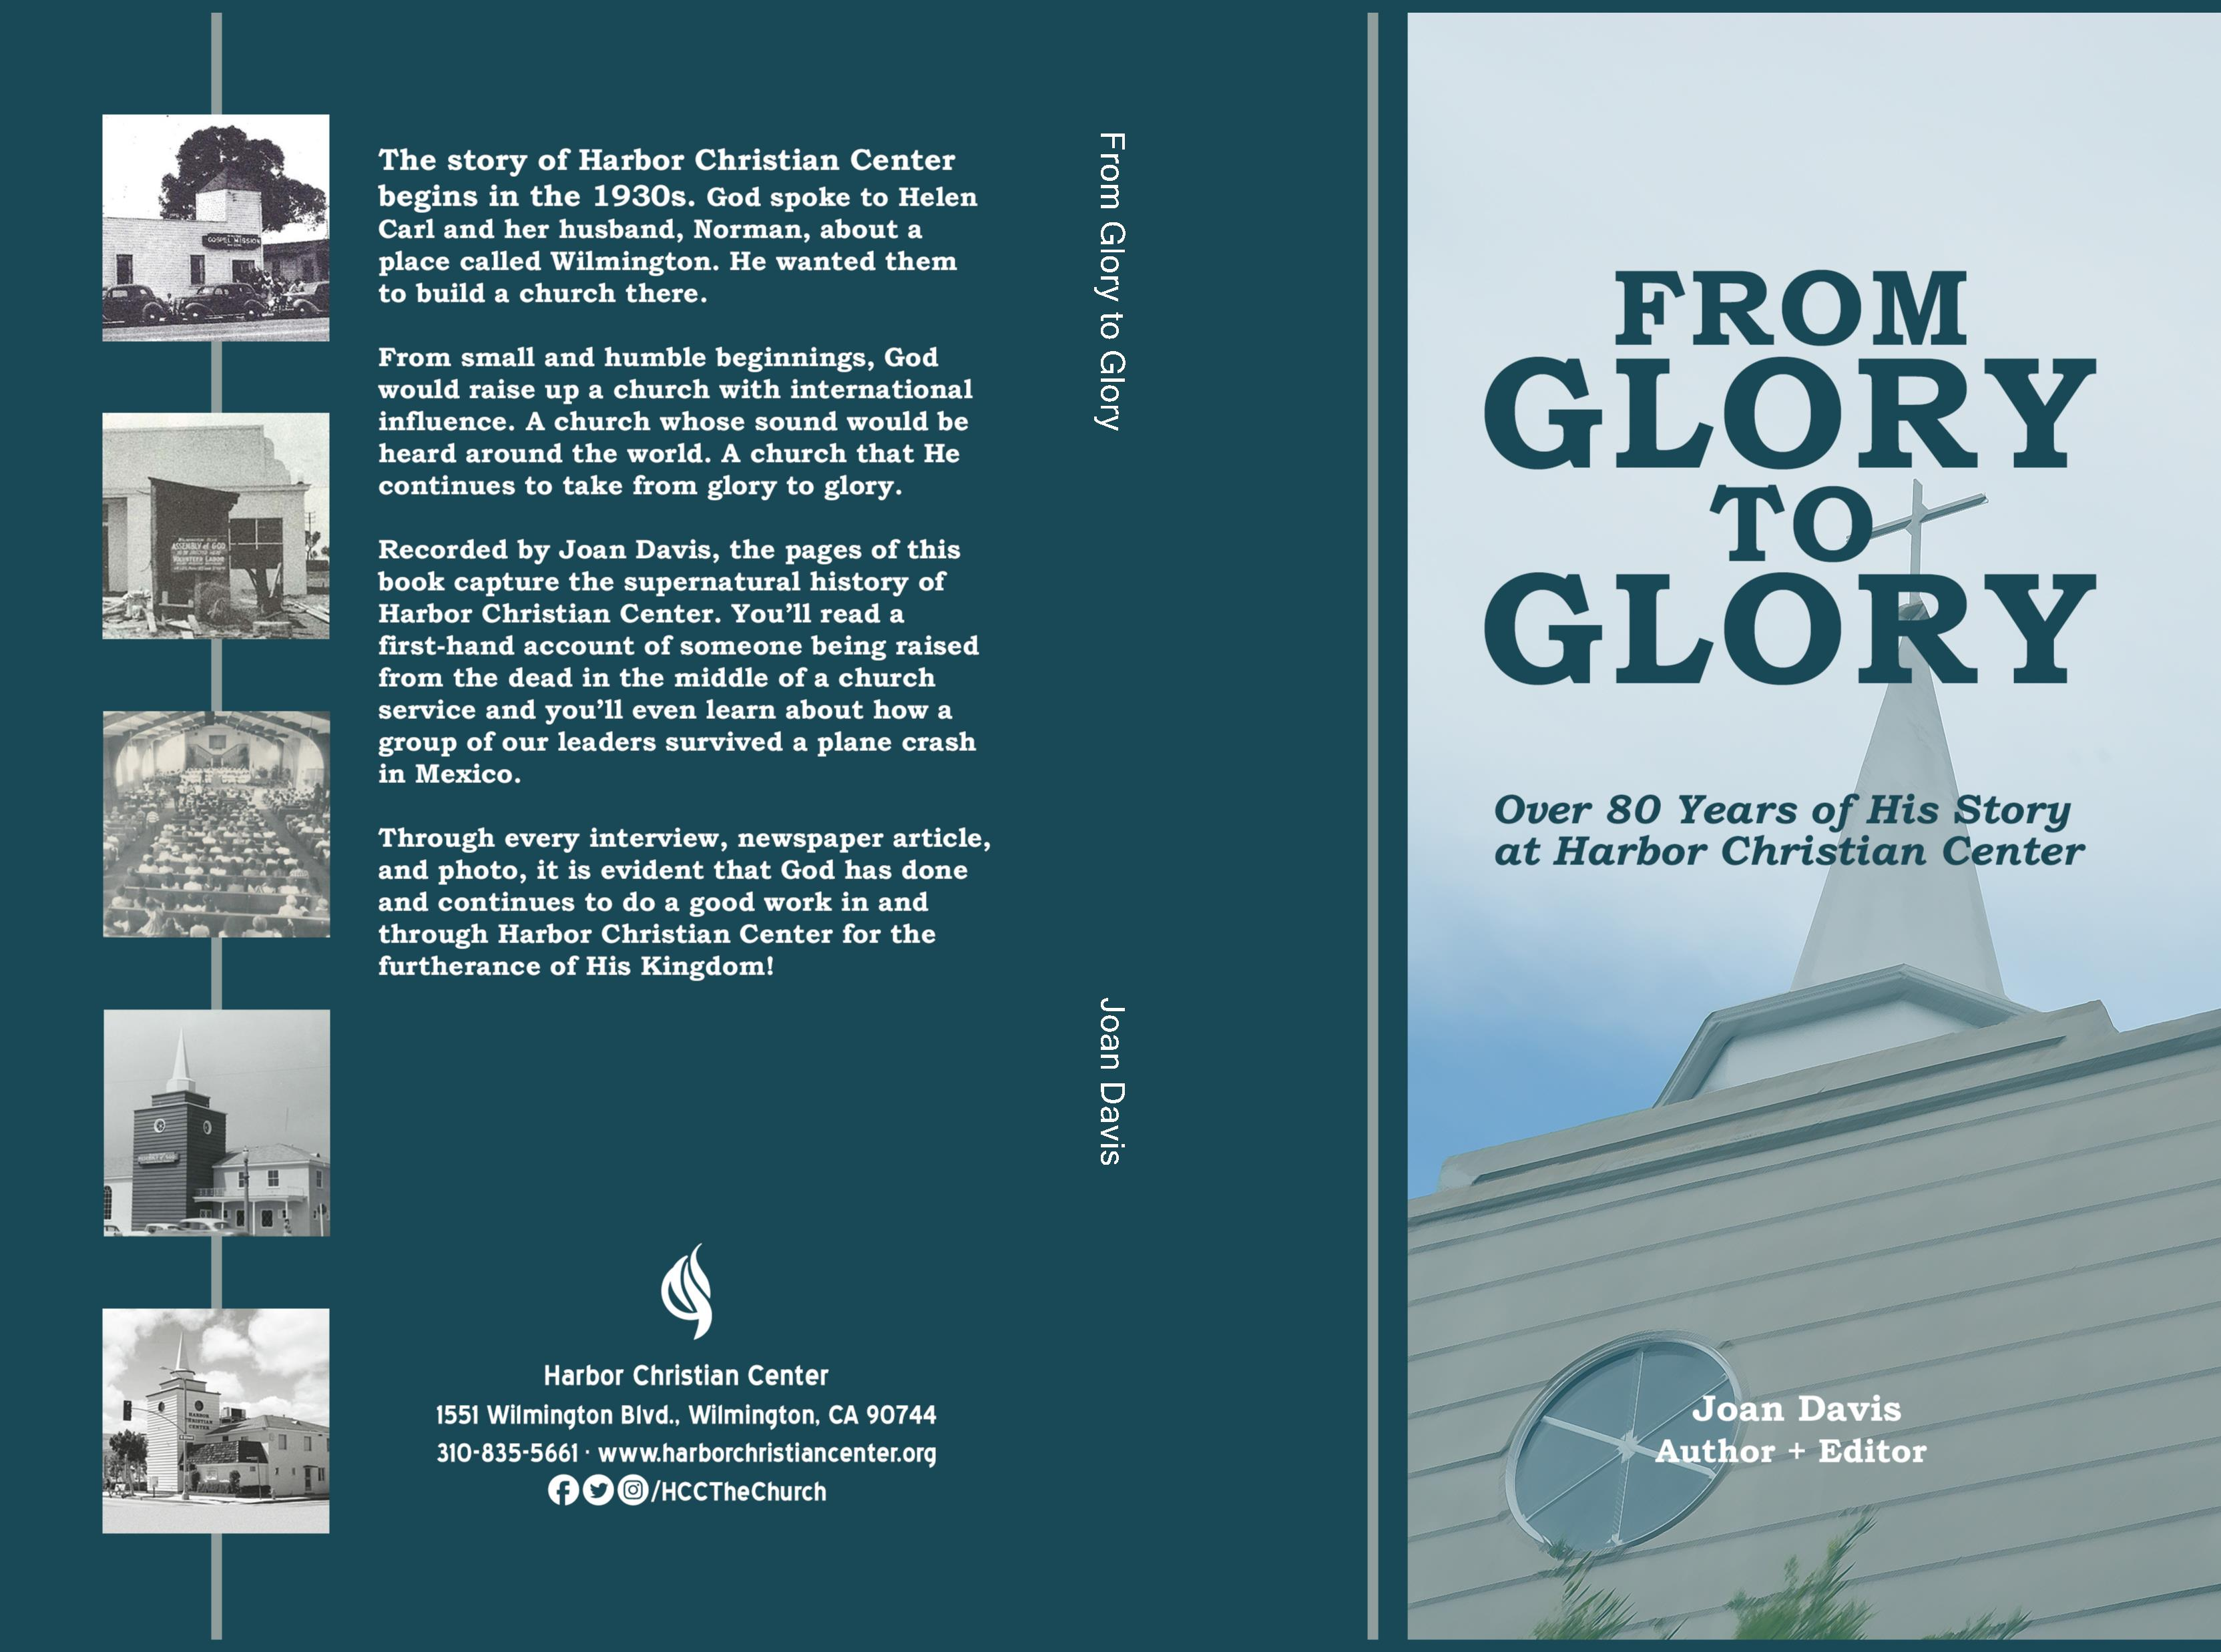 From Glory to Glory cover image